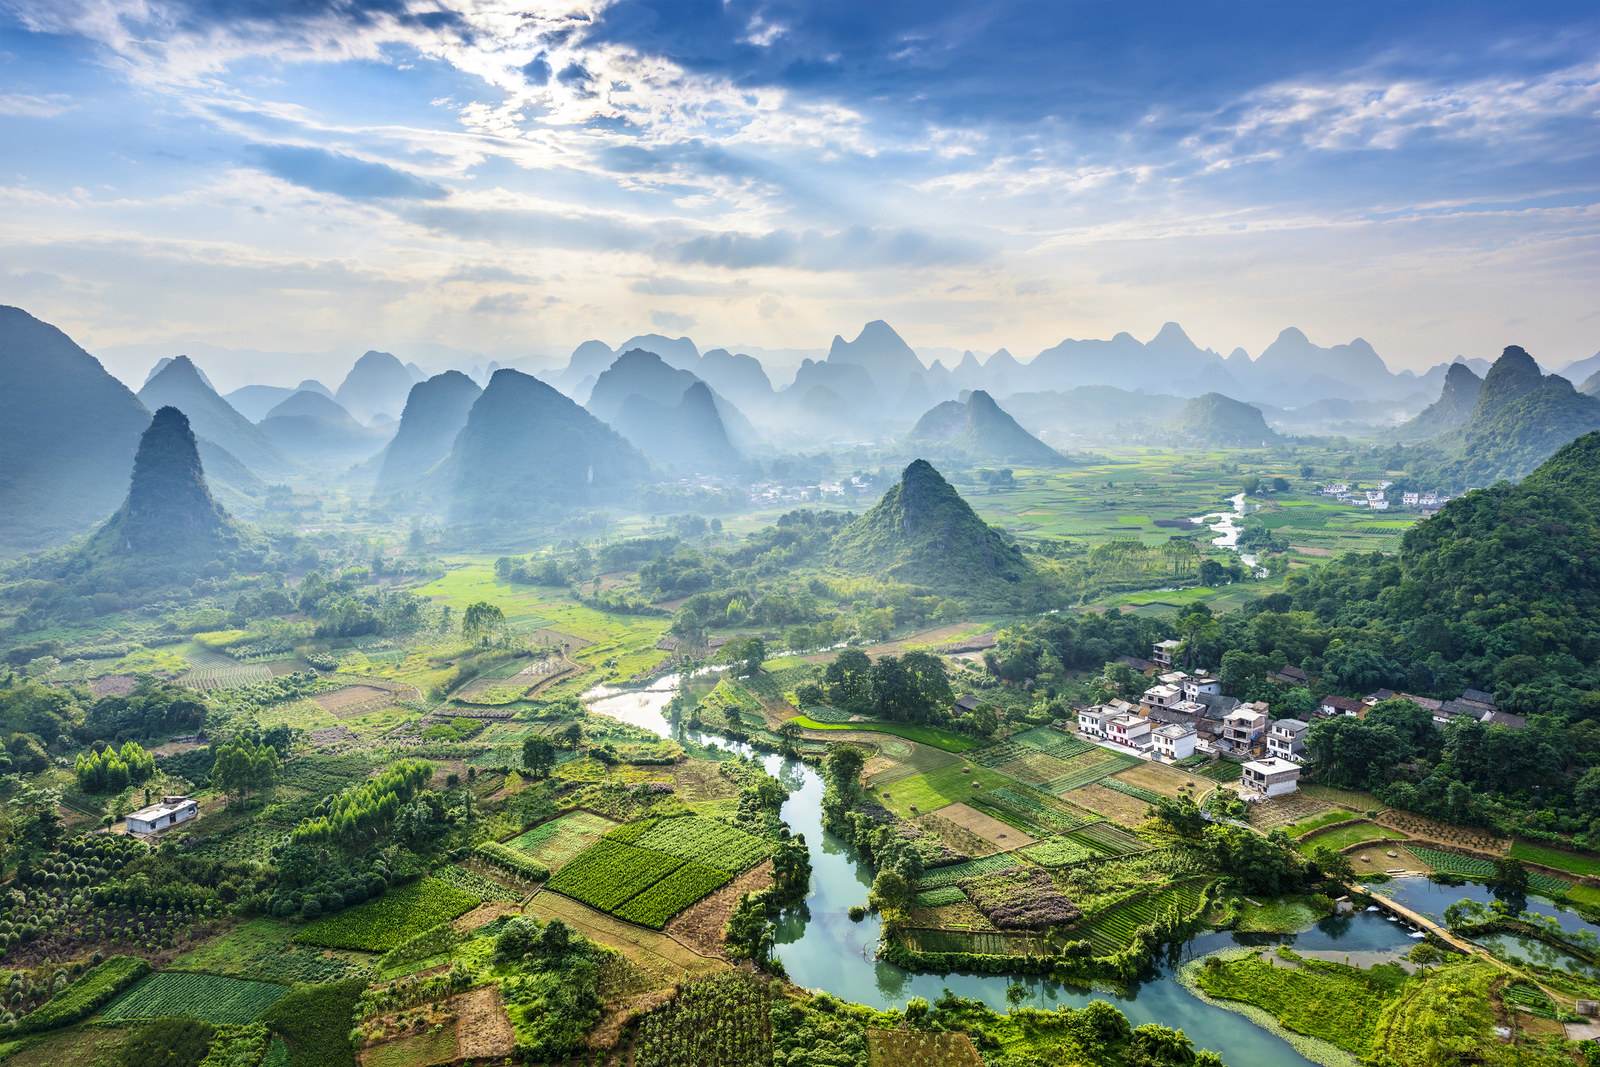 China: Guilin and Lijiang River National Park -  Set in southern China, the best way to see this unique setting made up of karst pillars, spiked cliffs, and dense forests is by river cruise.